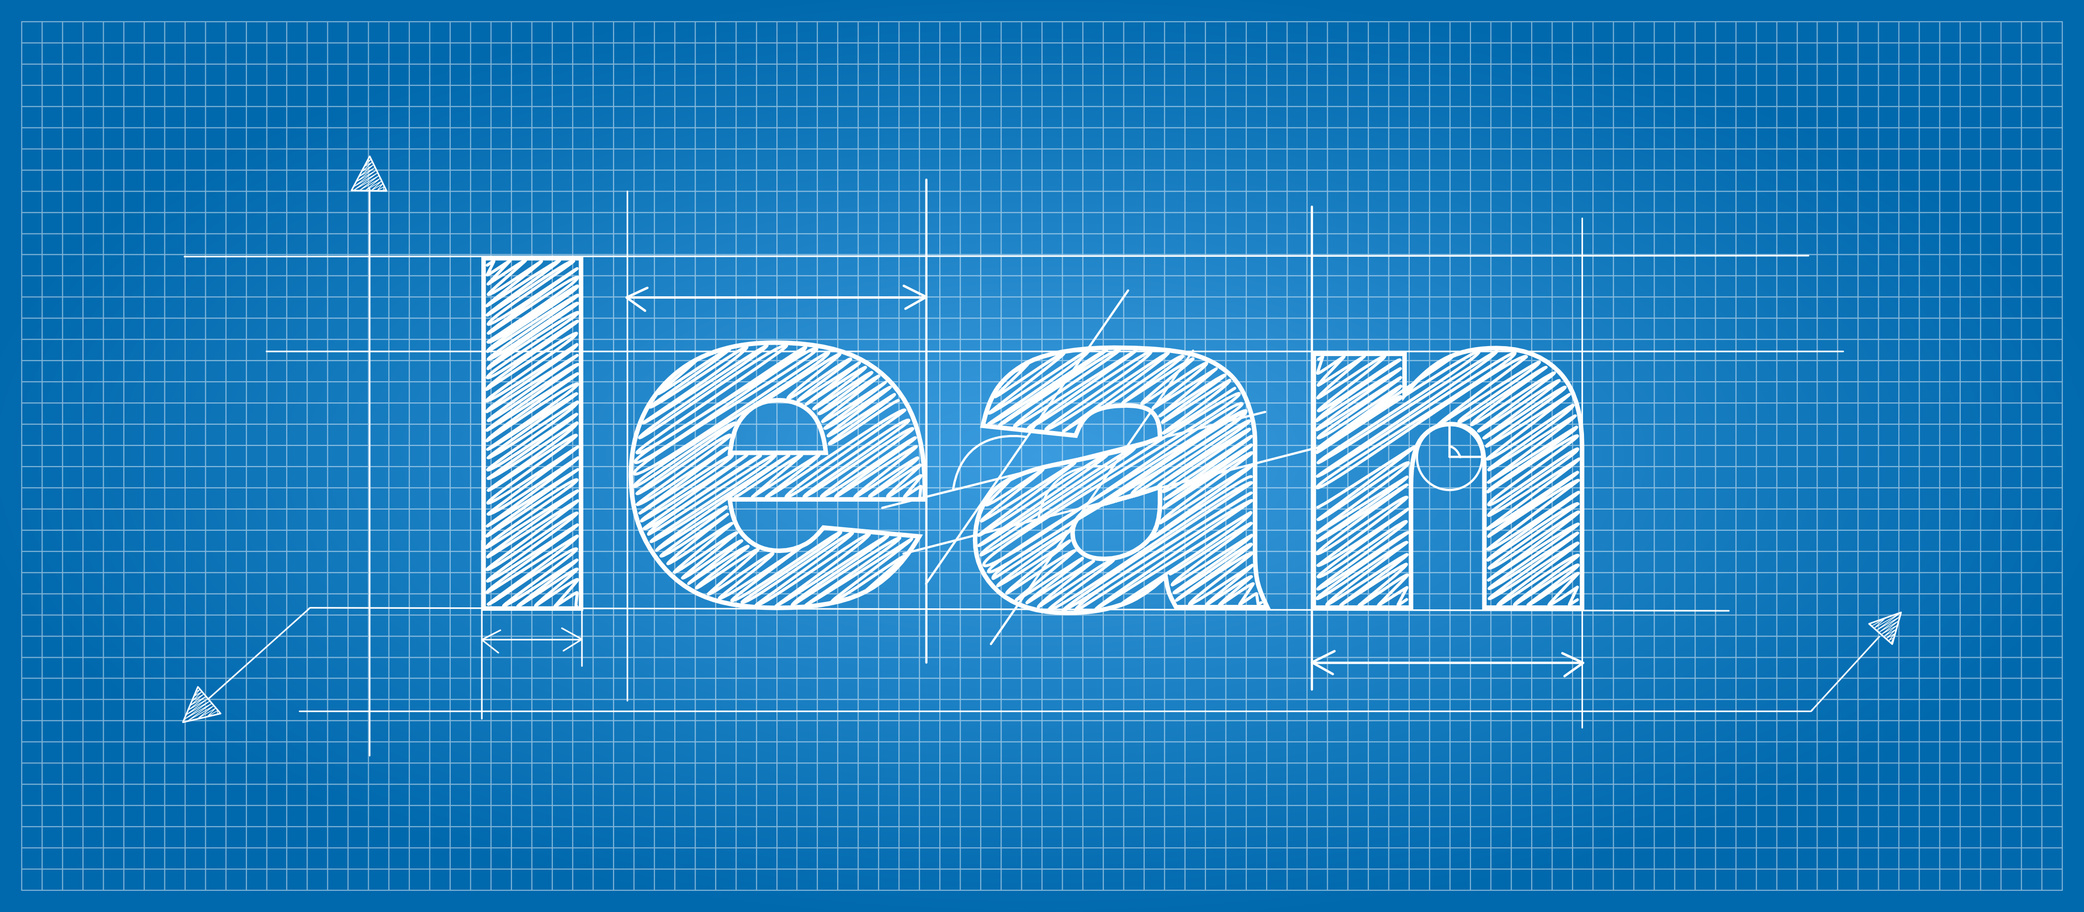 On familiar terms with the Lean Startup method